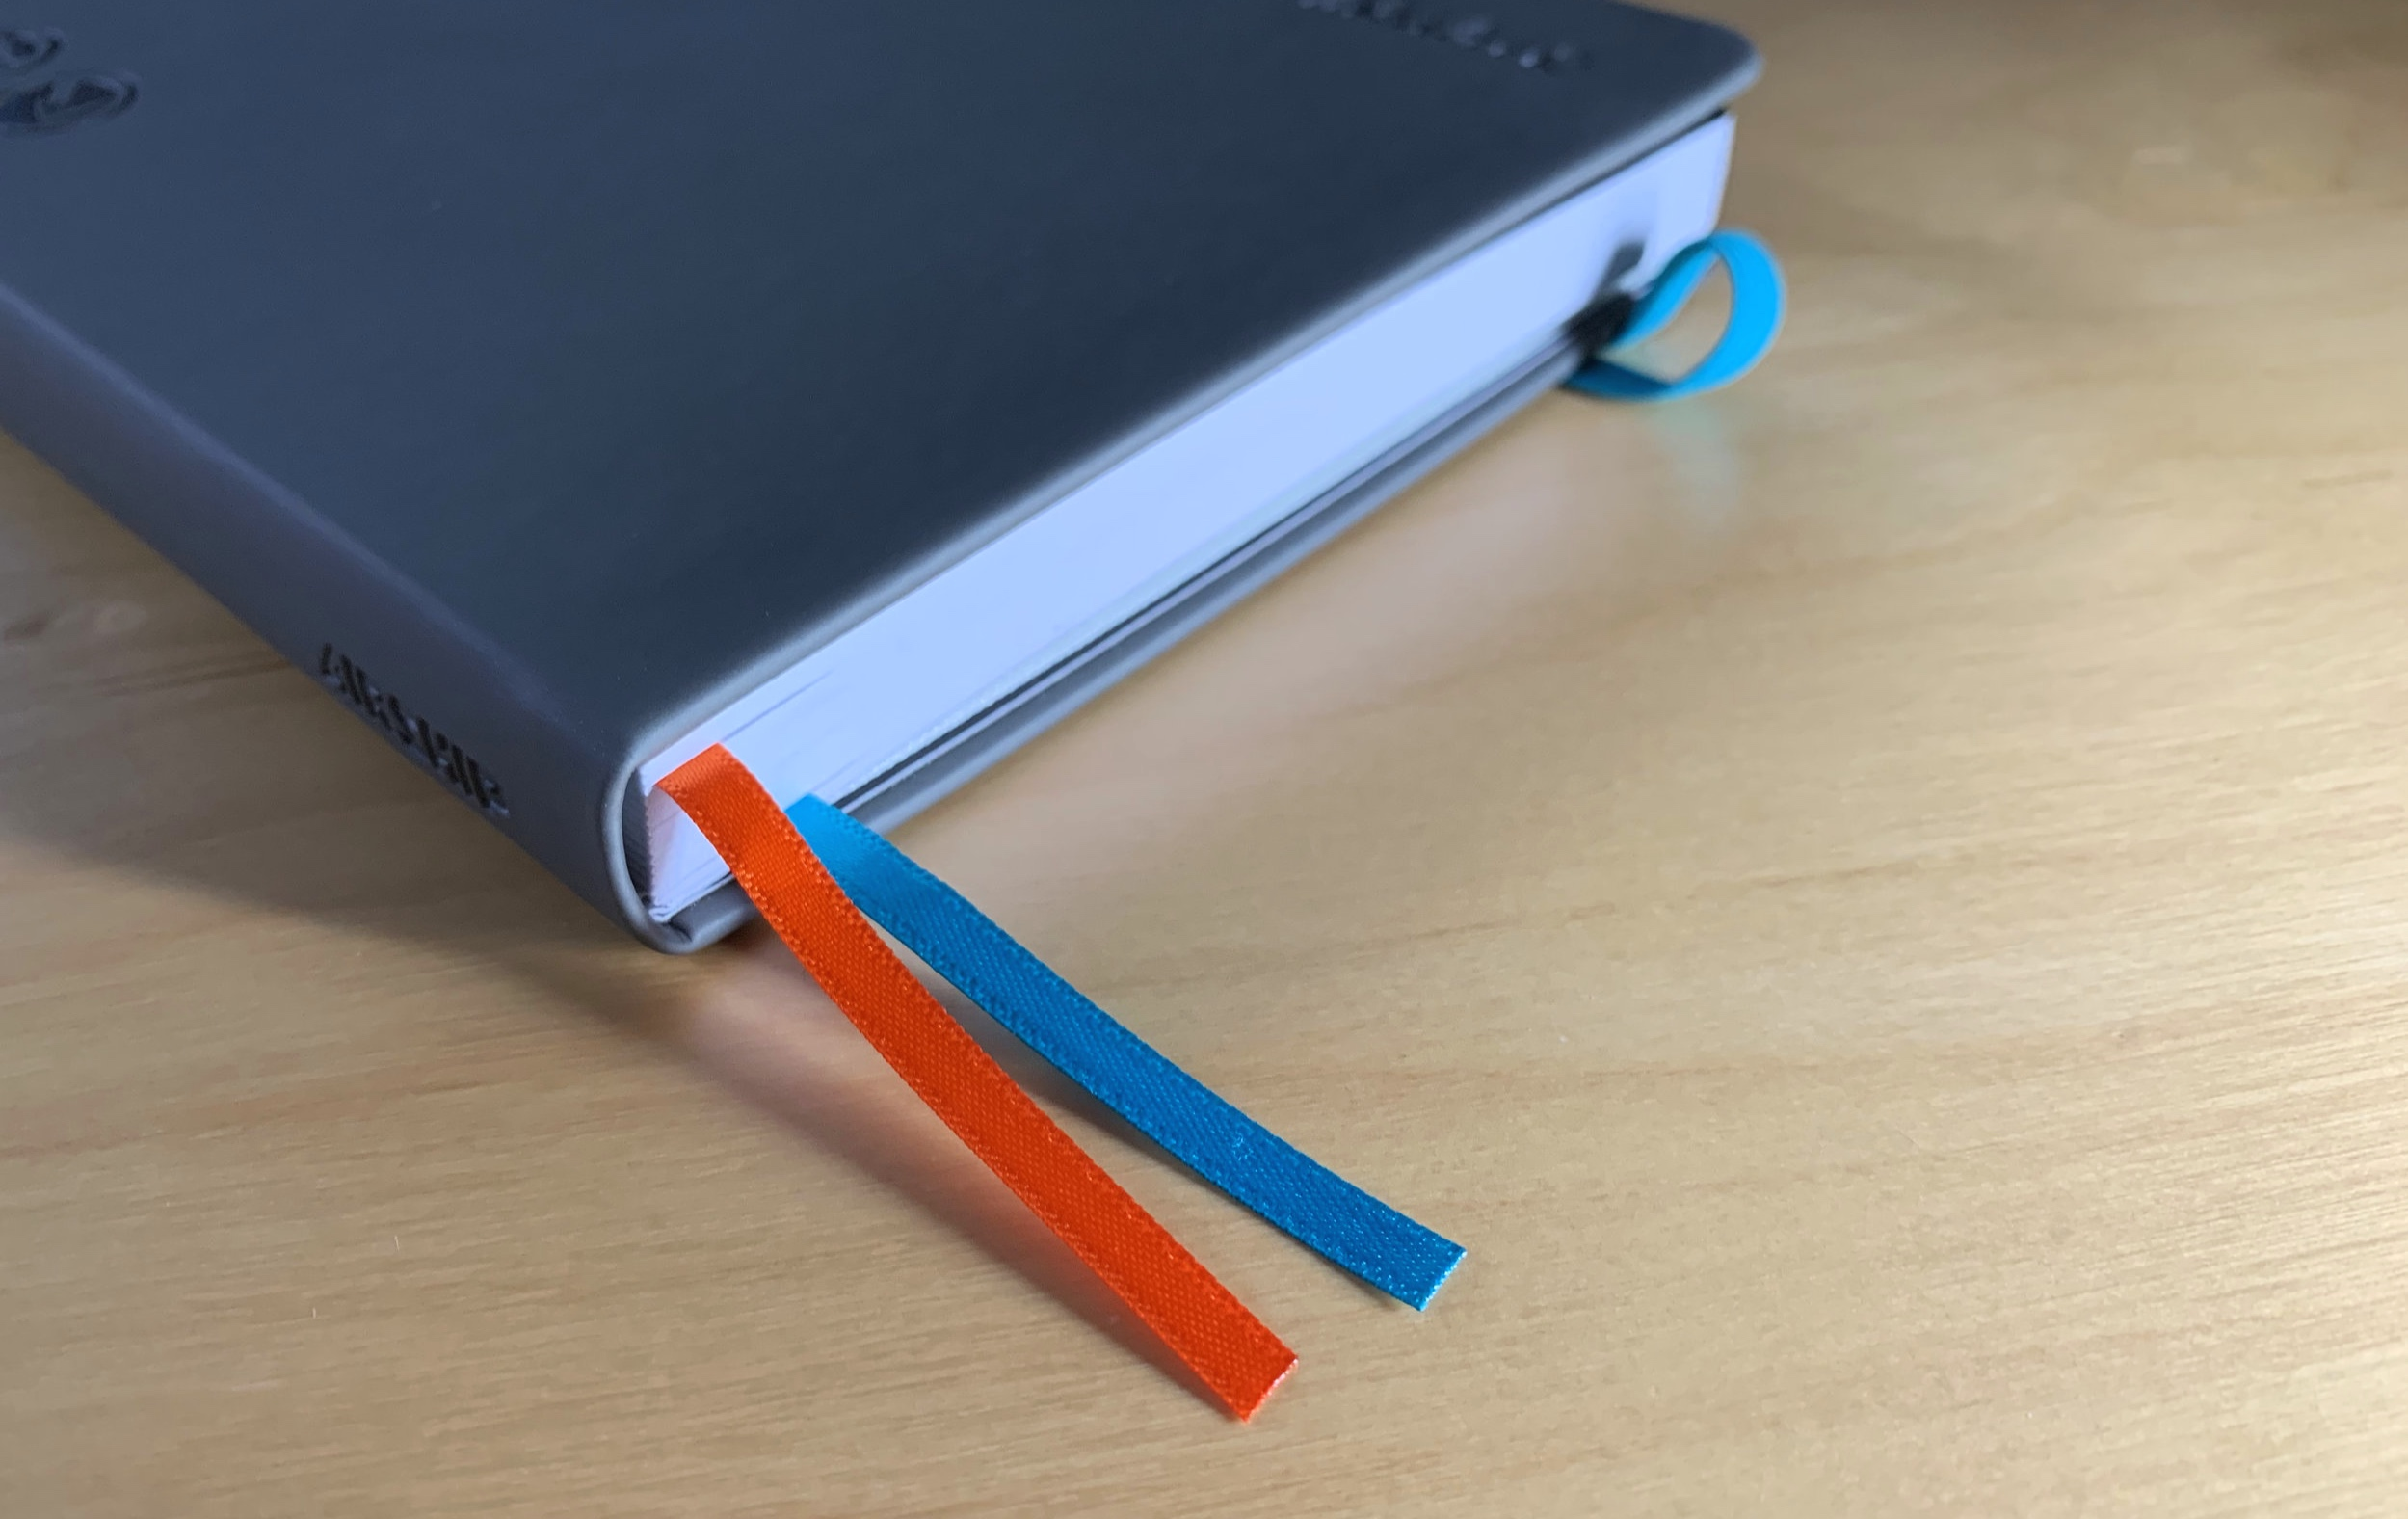 Two color ribbon bookmarks help you keep track of your work.